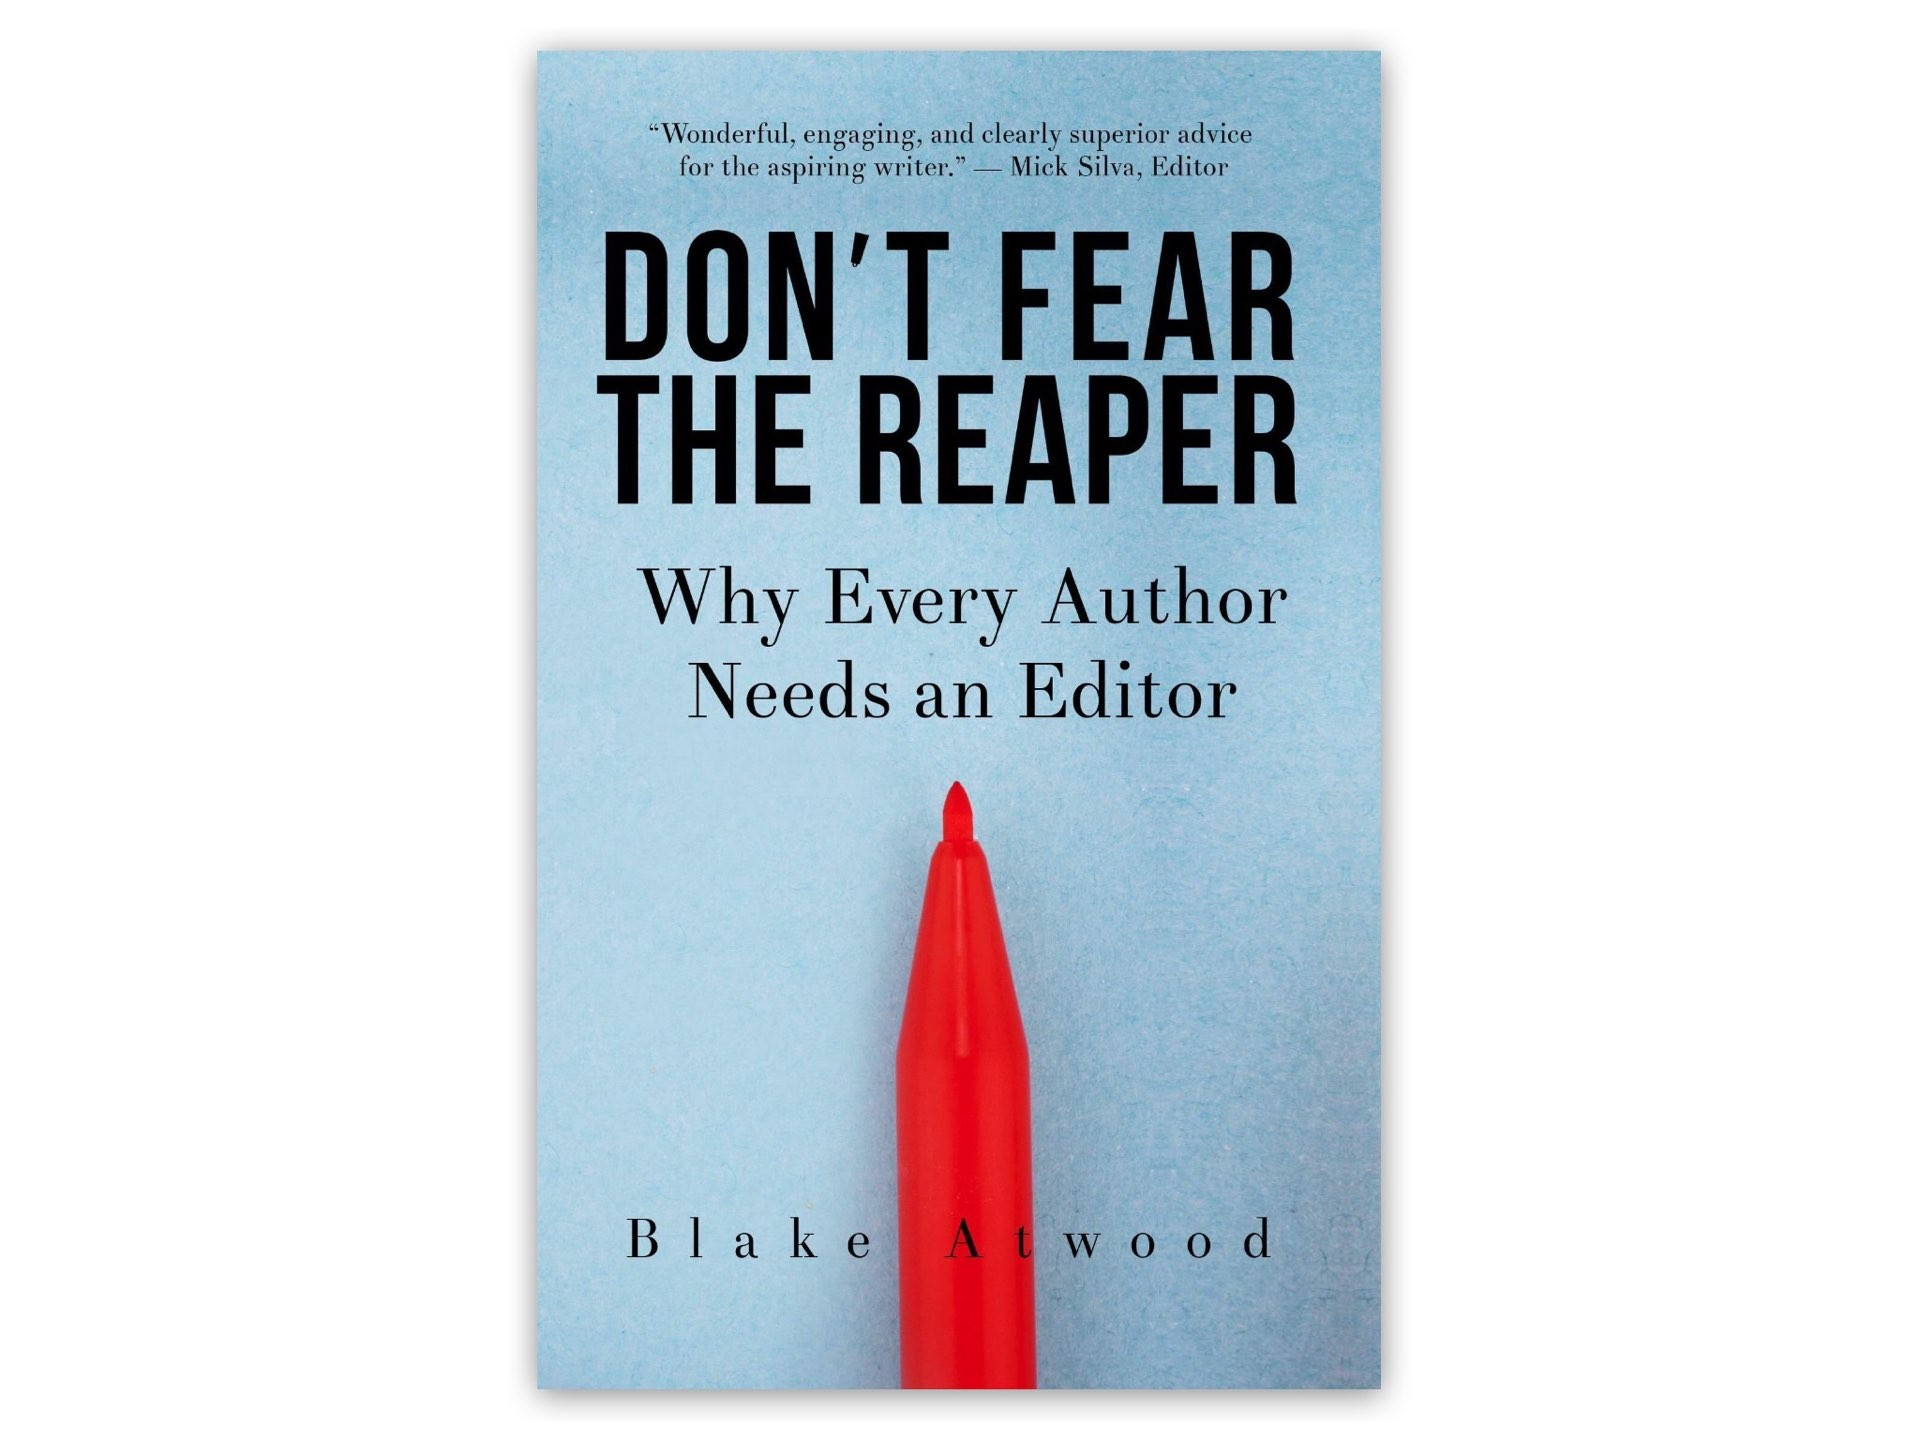 Don't Fear the Reaper by Blake Atwood.